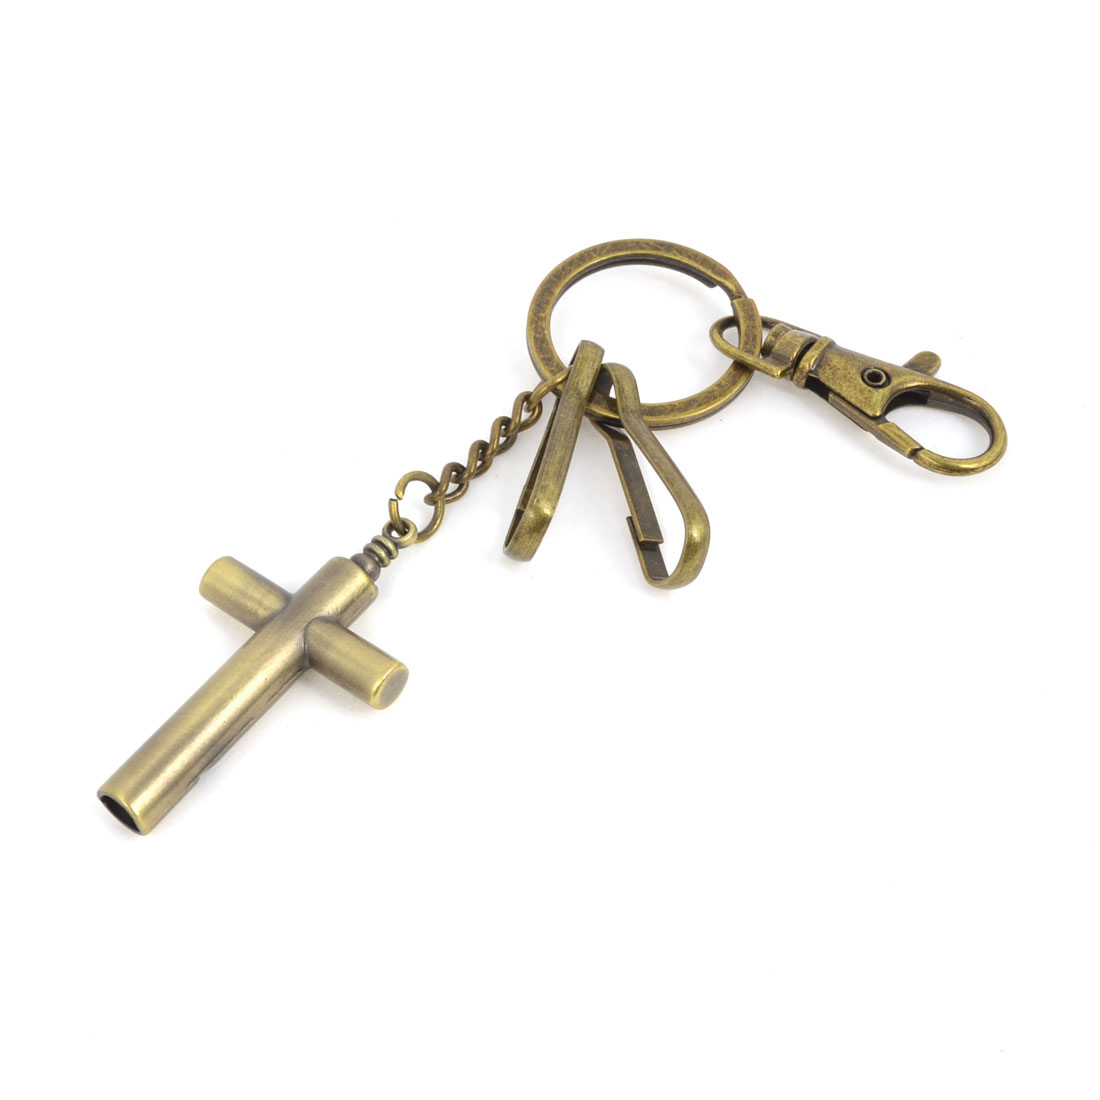 Bronze Tone Cross Key Ring Keychain Keyring Key Holder 14cm Length